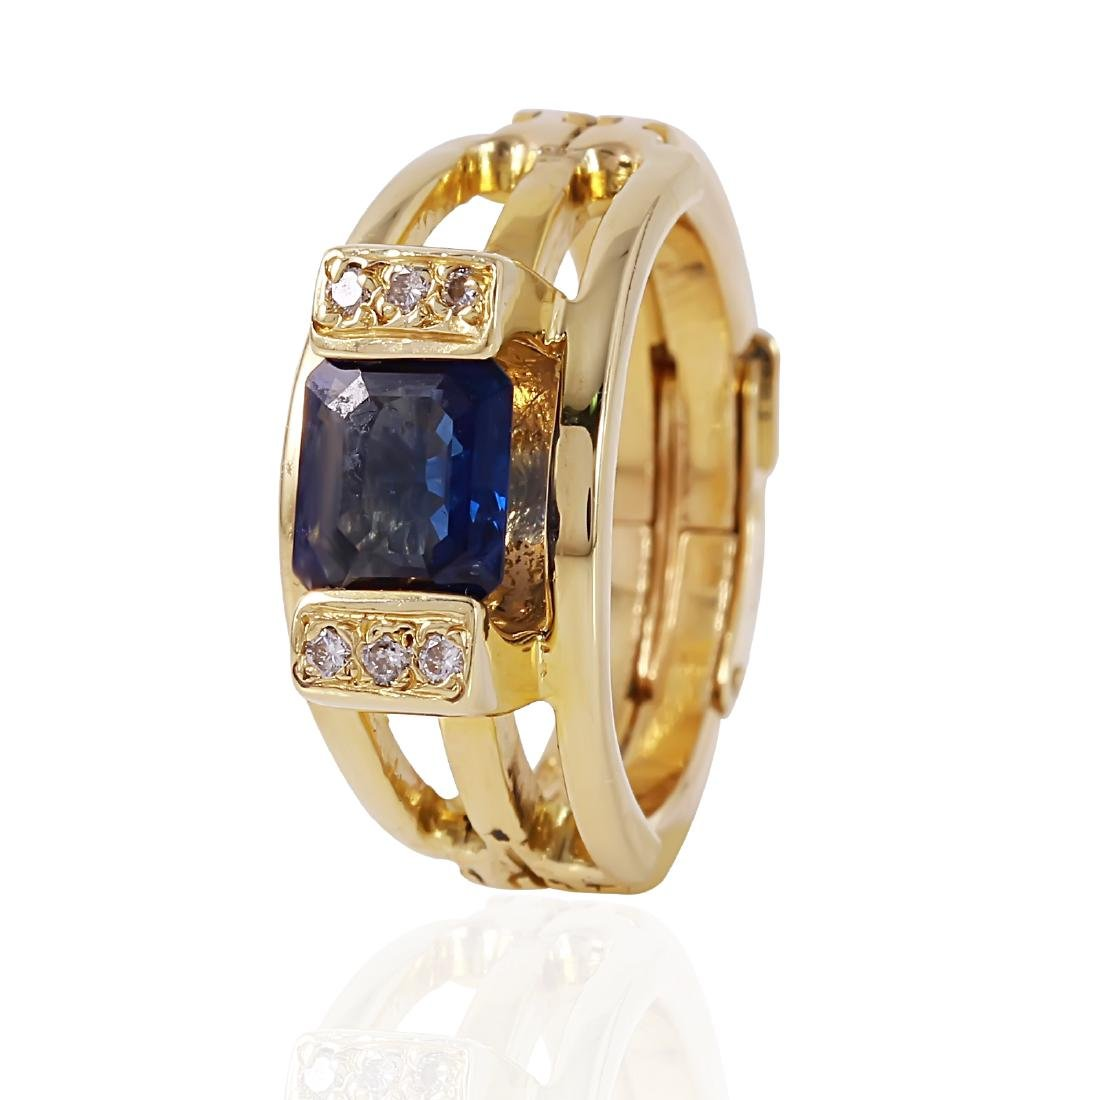 14KT Yellow Gold Sapphire and Diamond Ring